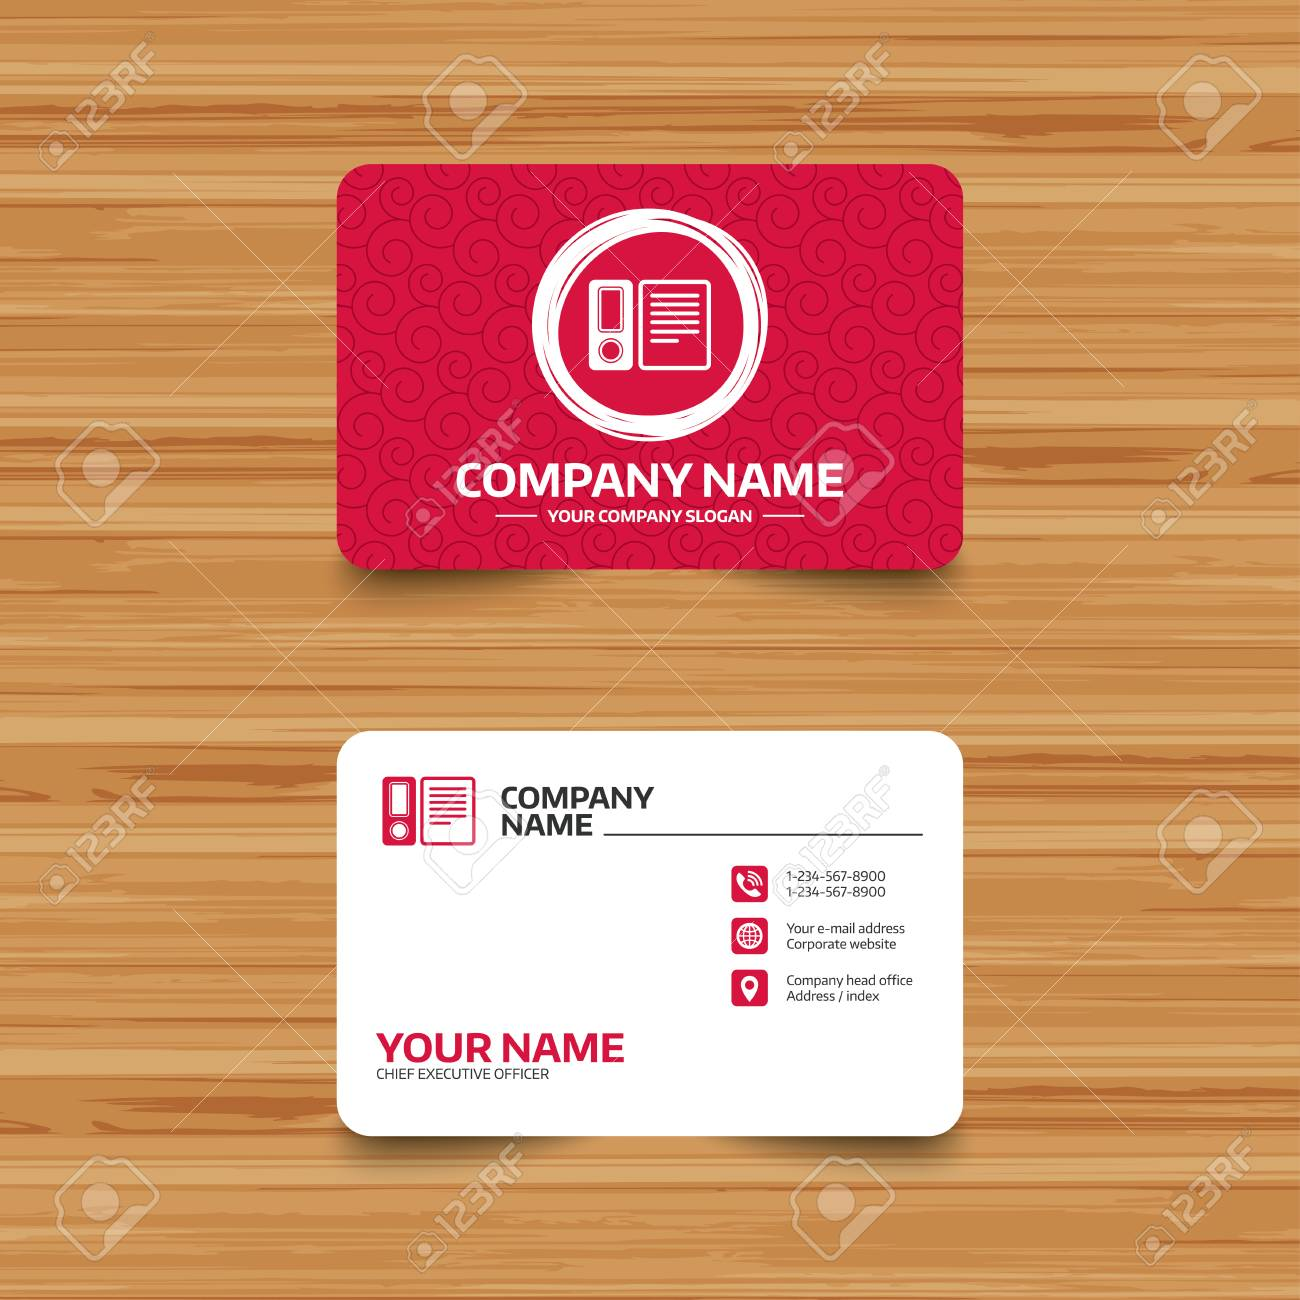 Business card template with texture document folder sign business card template with texture document folder sign accounting binder symbol bookkeeping management fbccfo Image collections